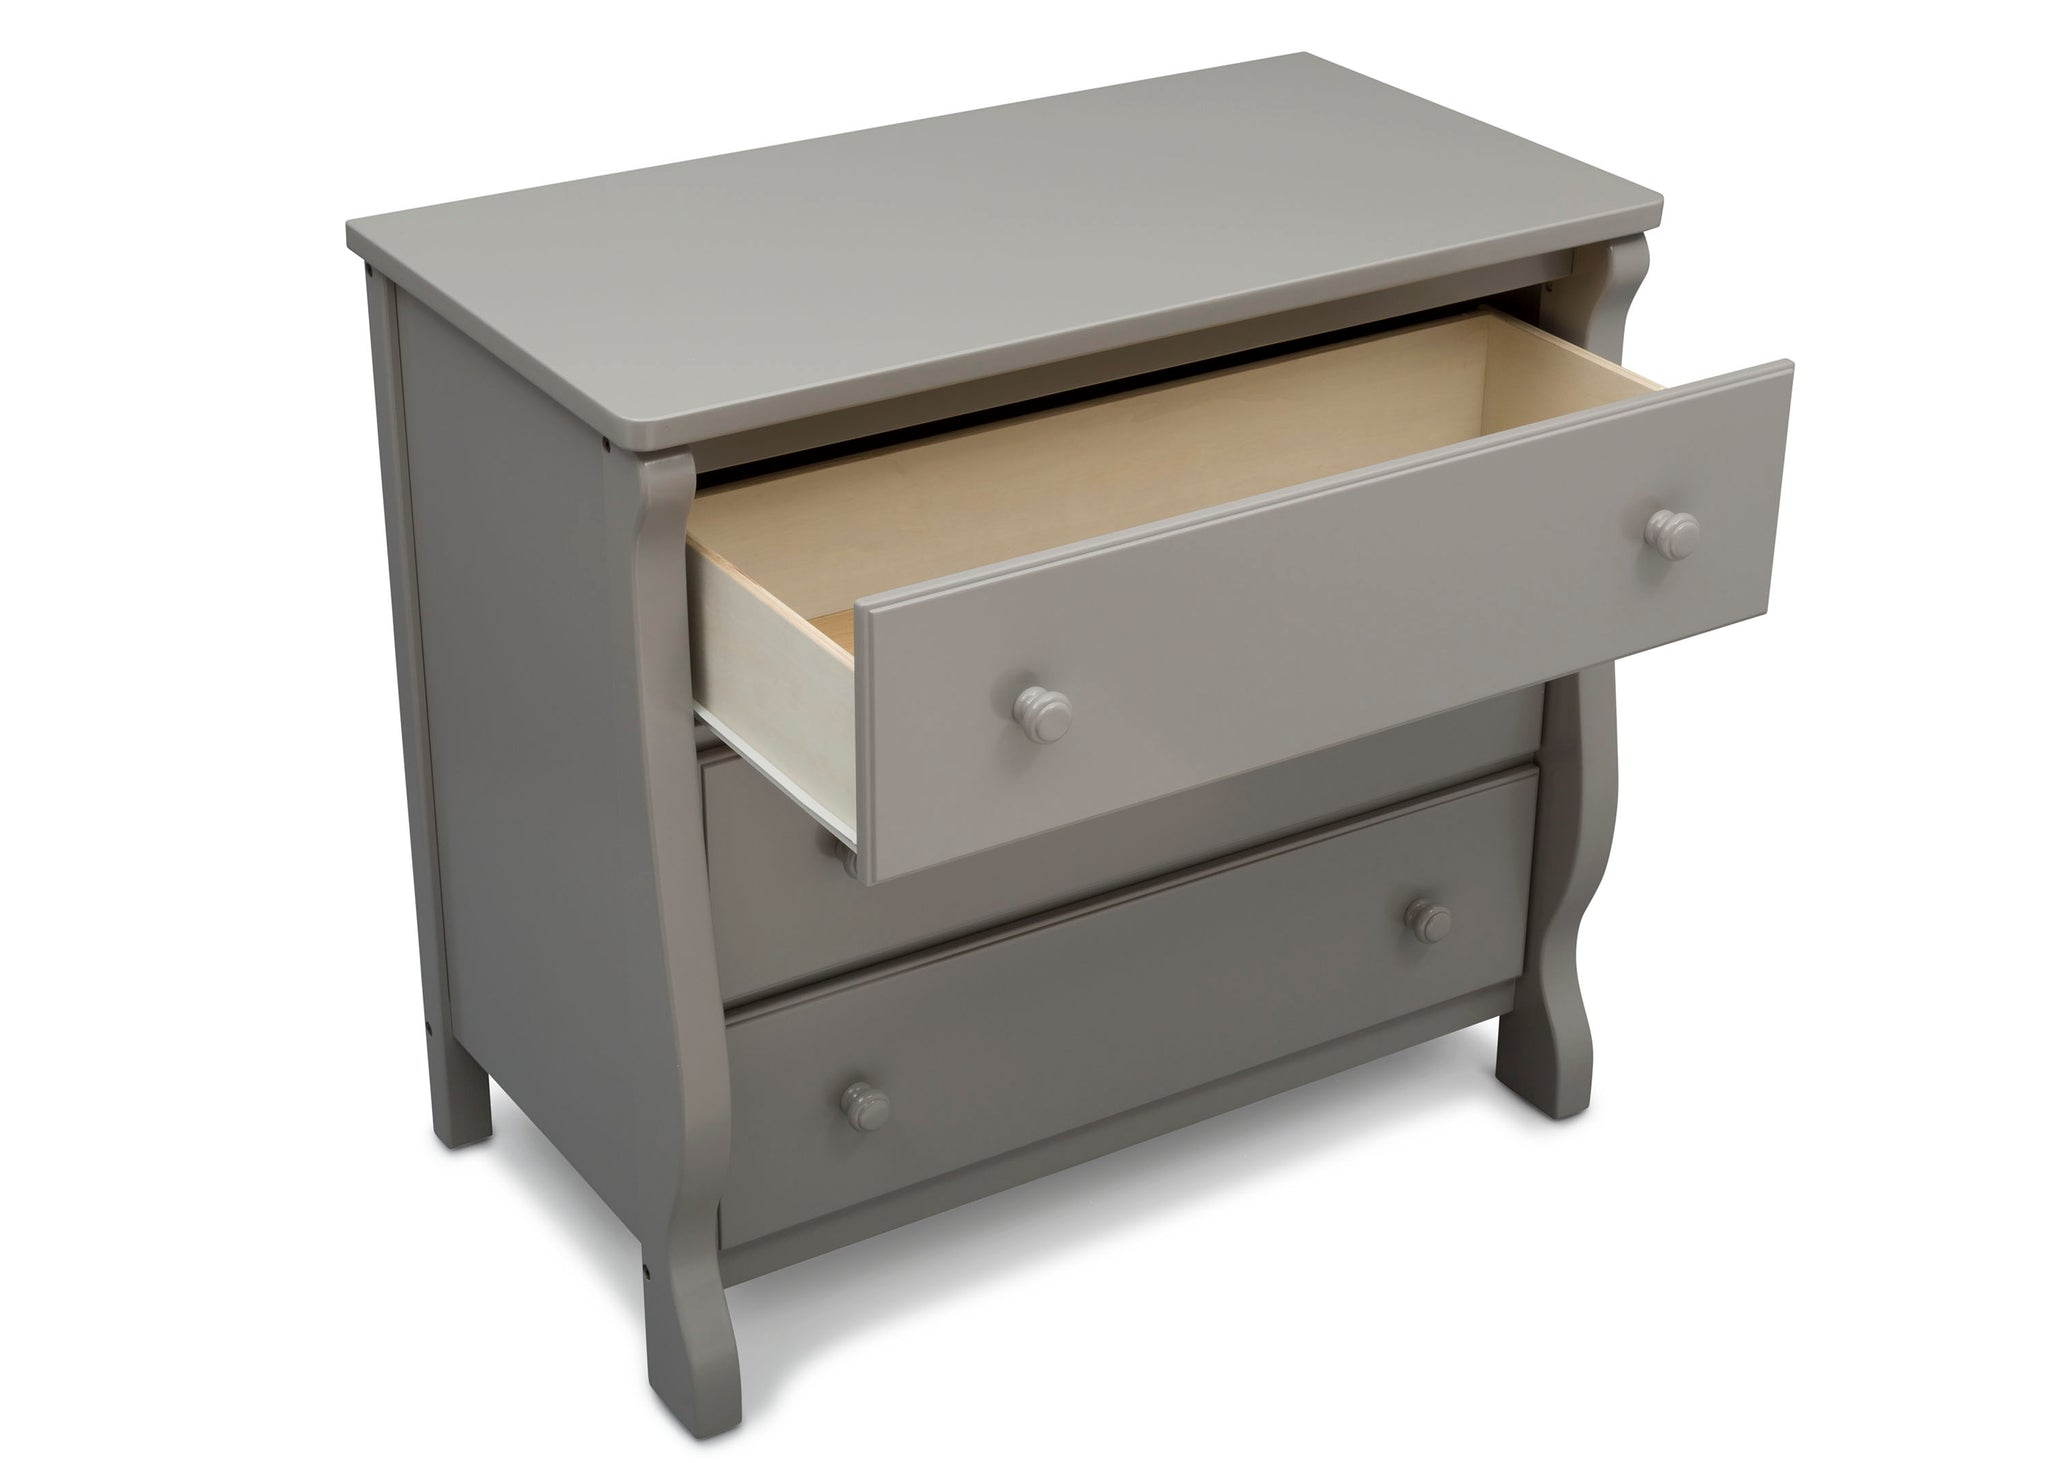 Delta Children Grey (026) Universal 3 Drawer Dresser Open Drawer Silo View